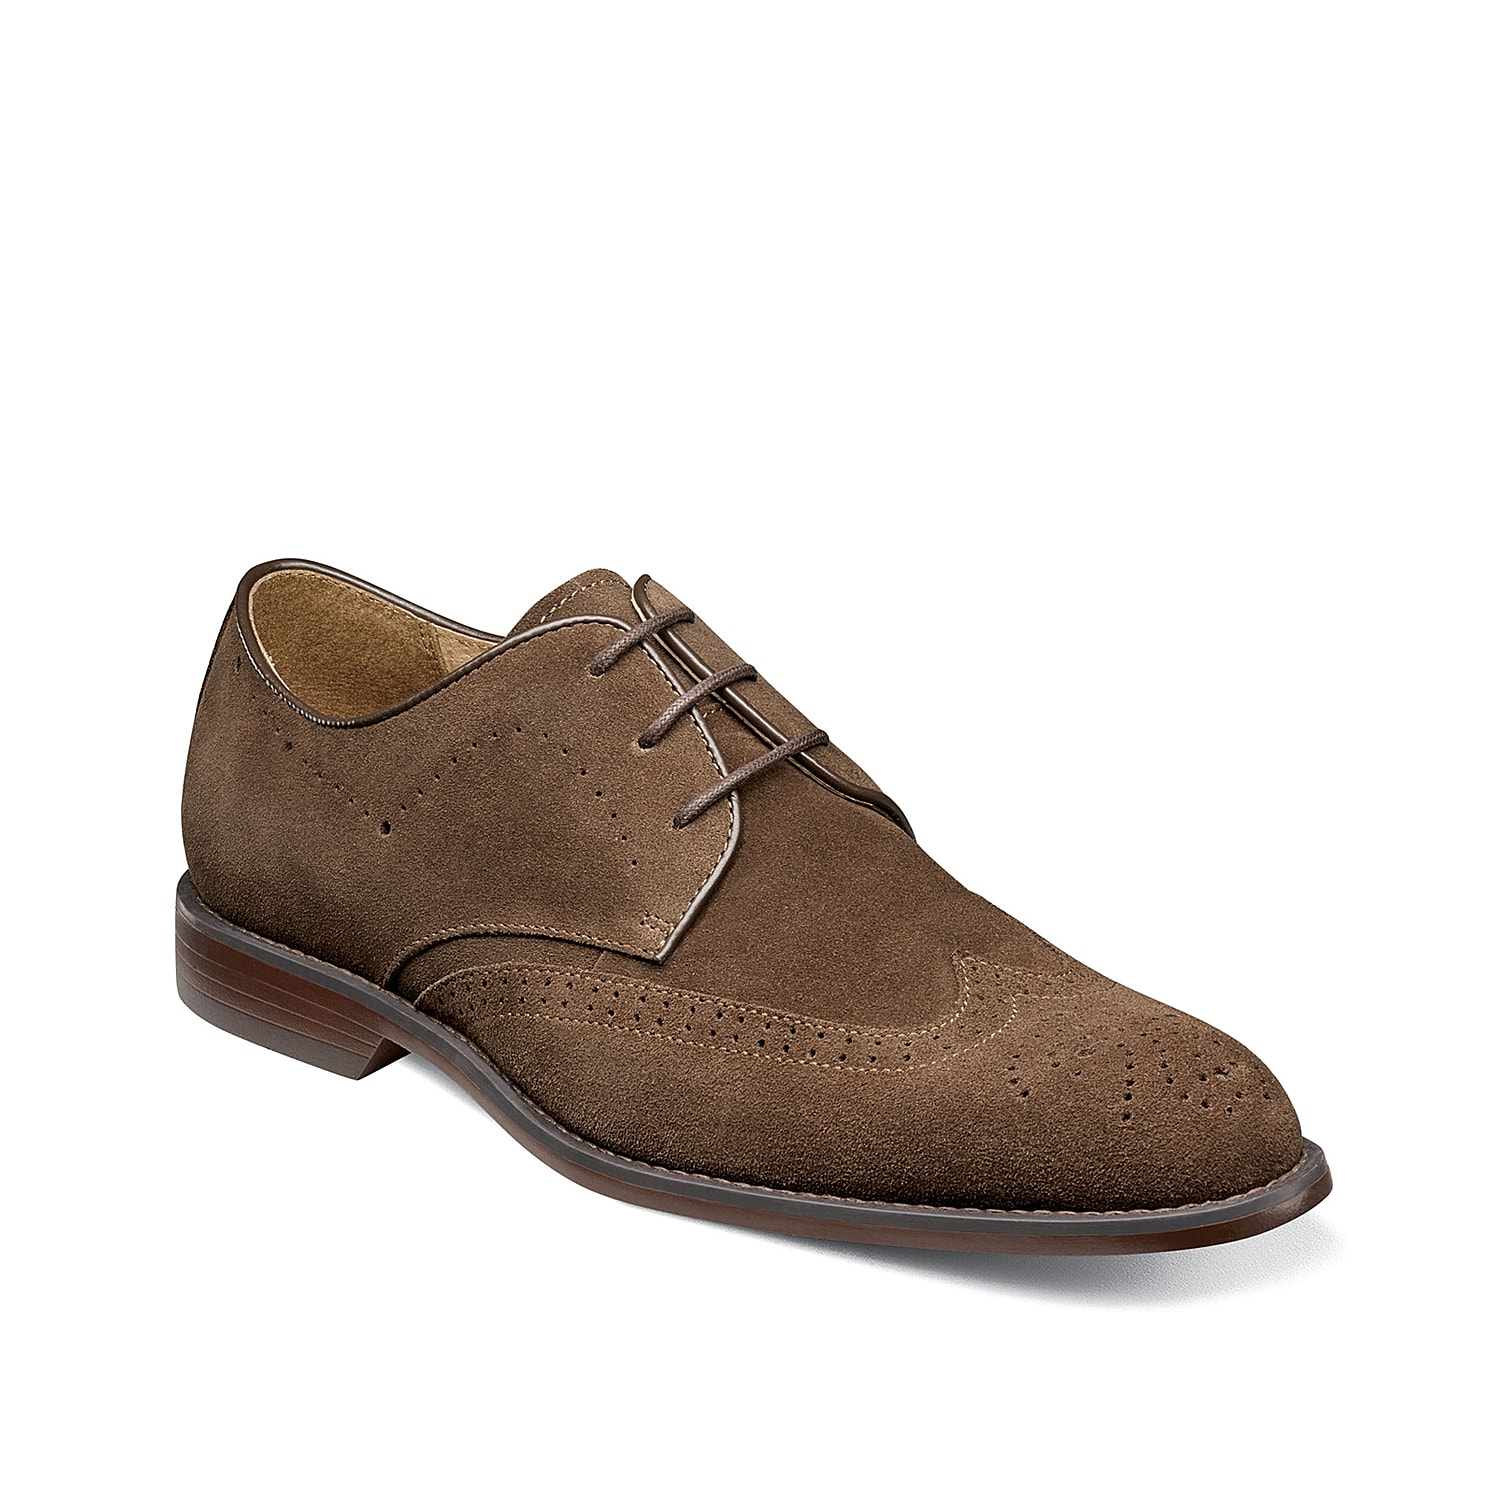 Once you lace into the Wickersham wingtip oxford from Stacy Adams, you\\\'ll want to rock it with all your tailored looks! This suede pair is upgraded with a memory foam footbed for all day comfort.